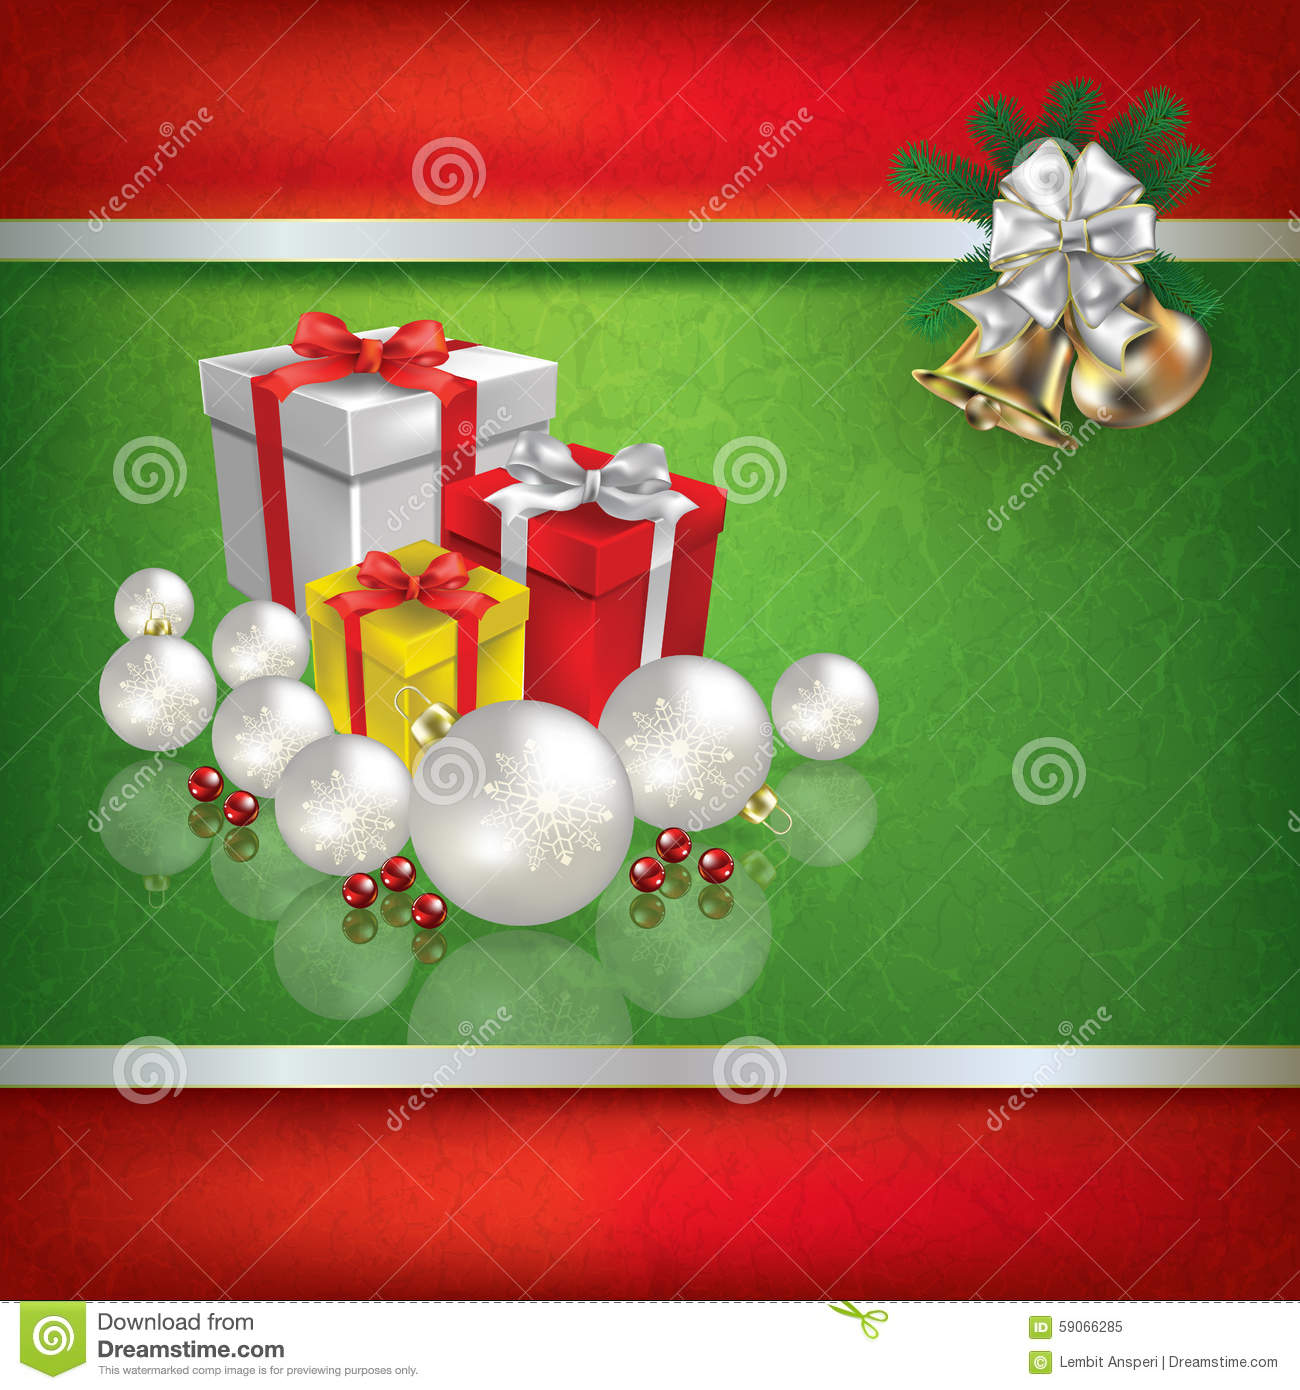 Abstract grunge green background with christmas gifts